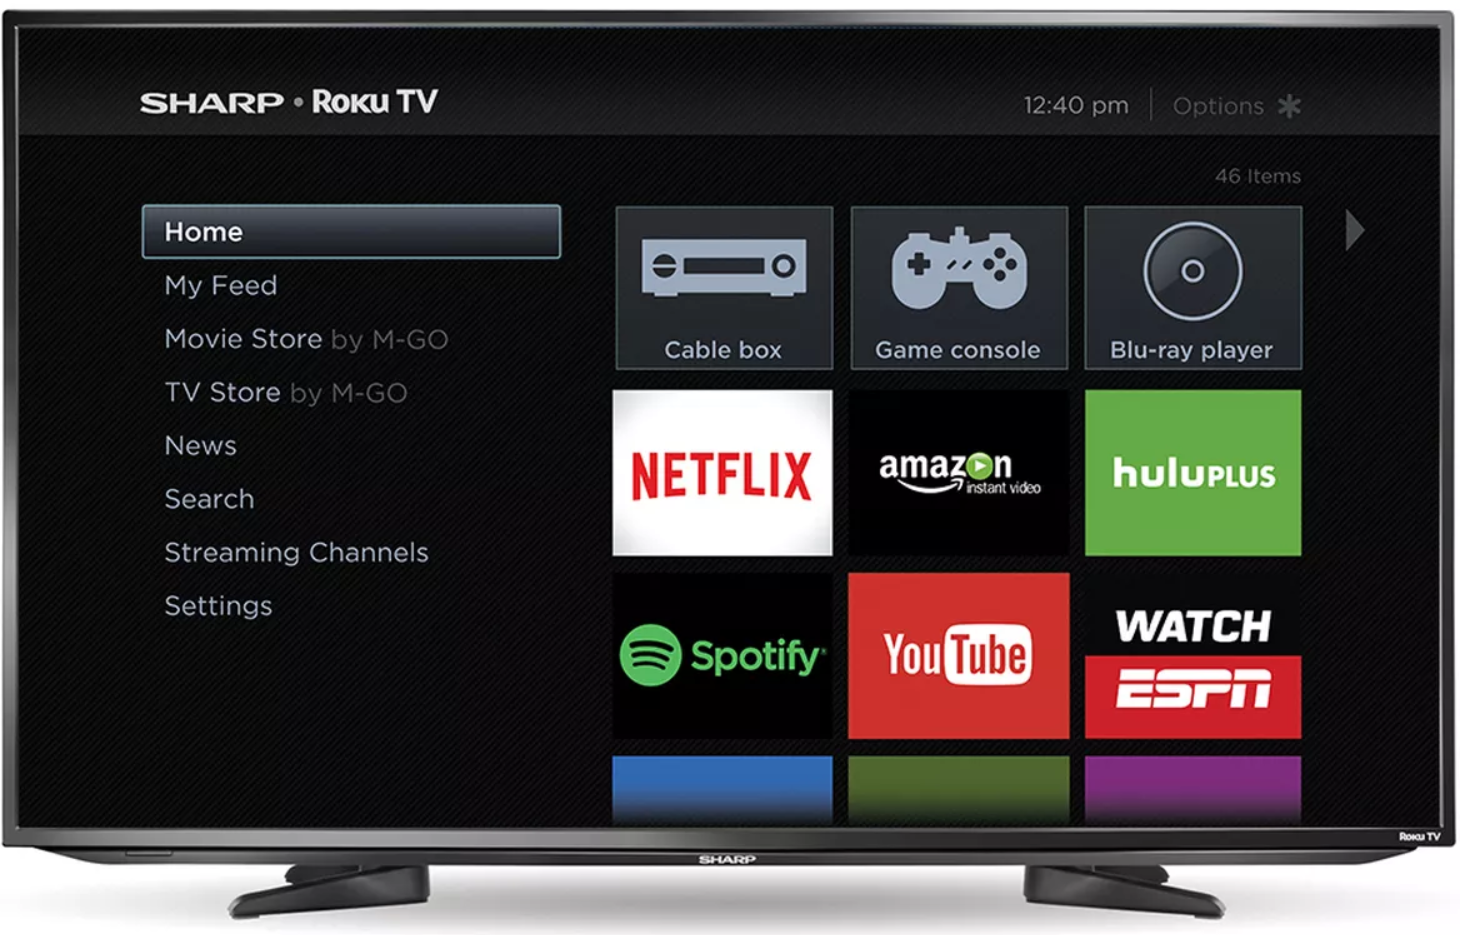 Roku Very Bullish On The Company But More Neutral On Its Shares